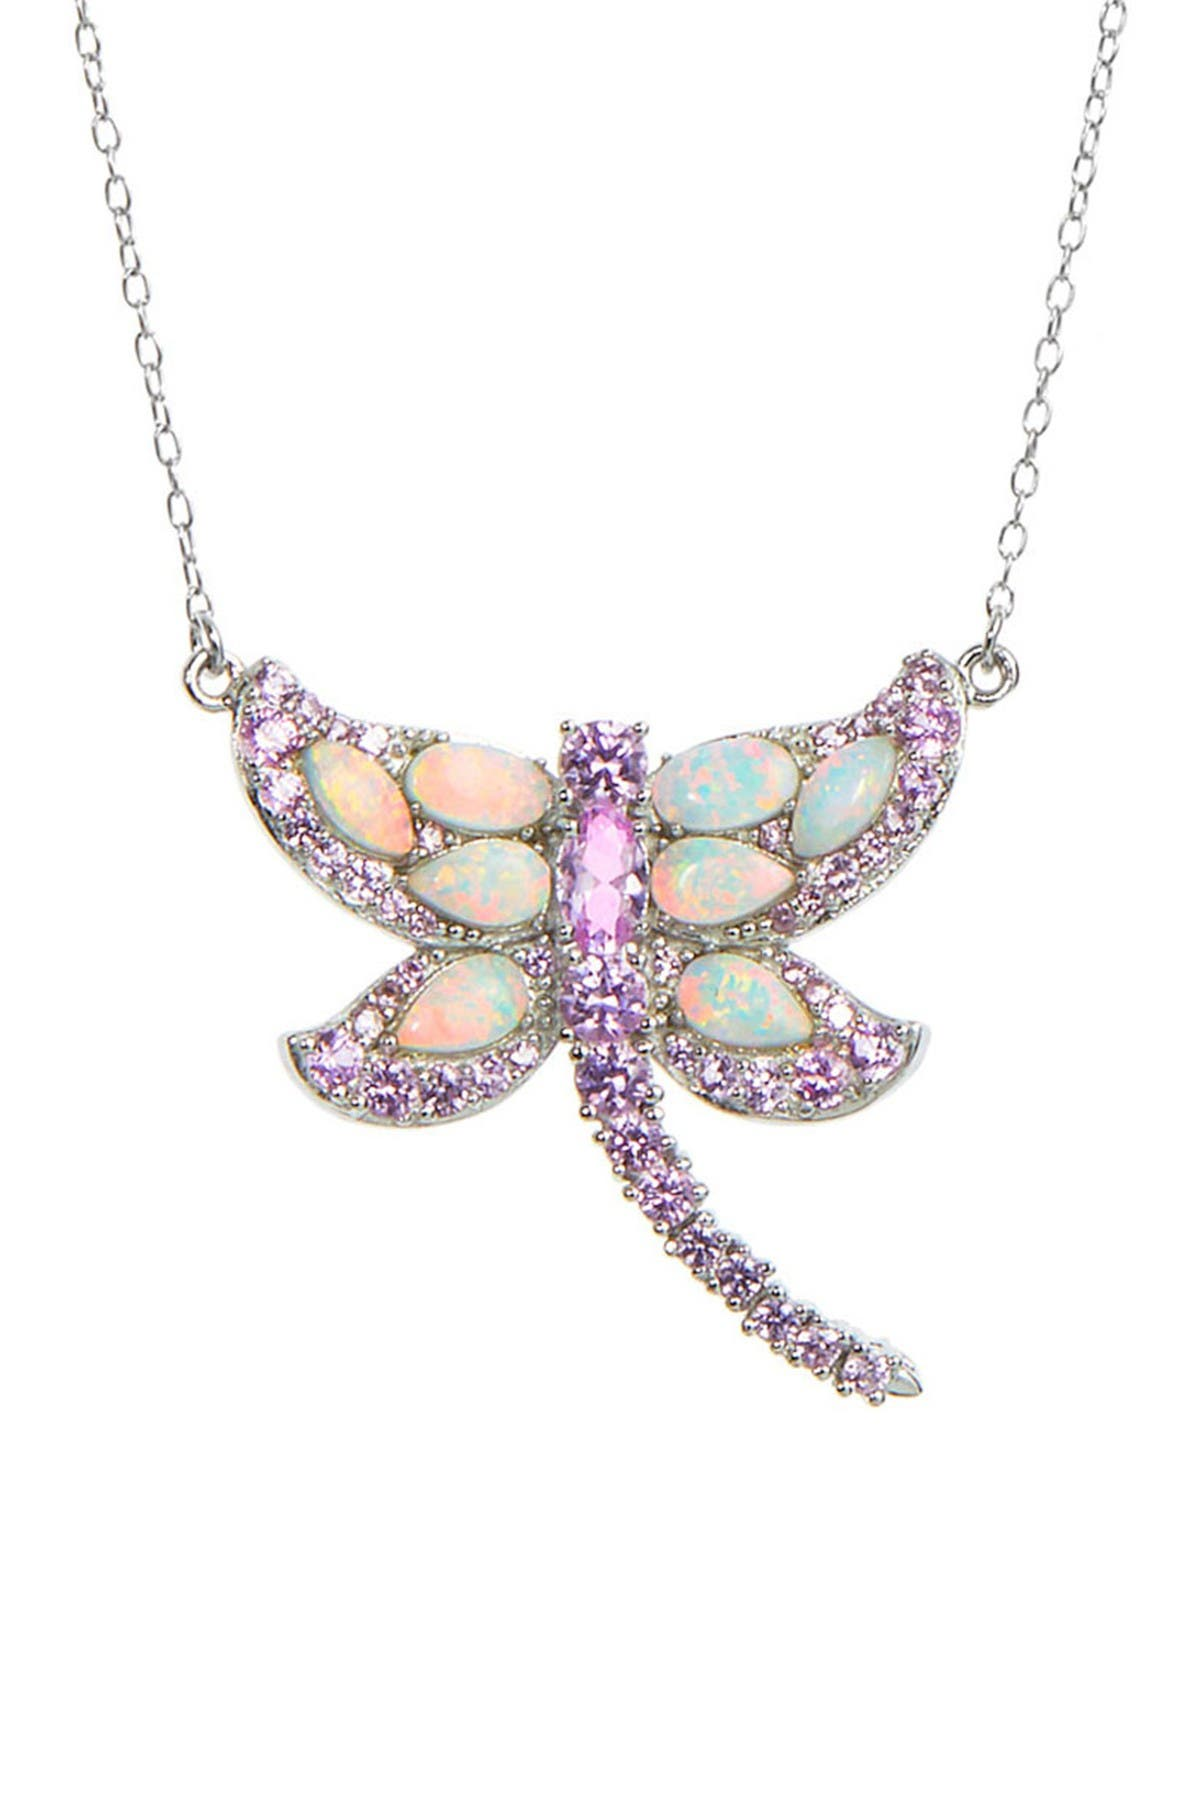 Image of Savvy Cie Dragonfly Pendant Necklace